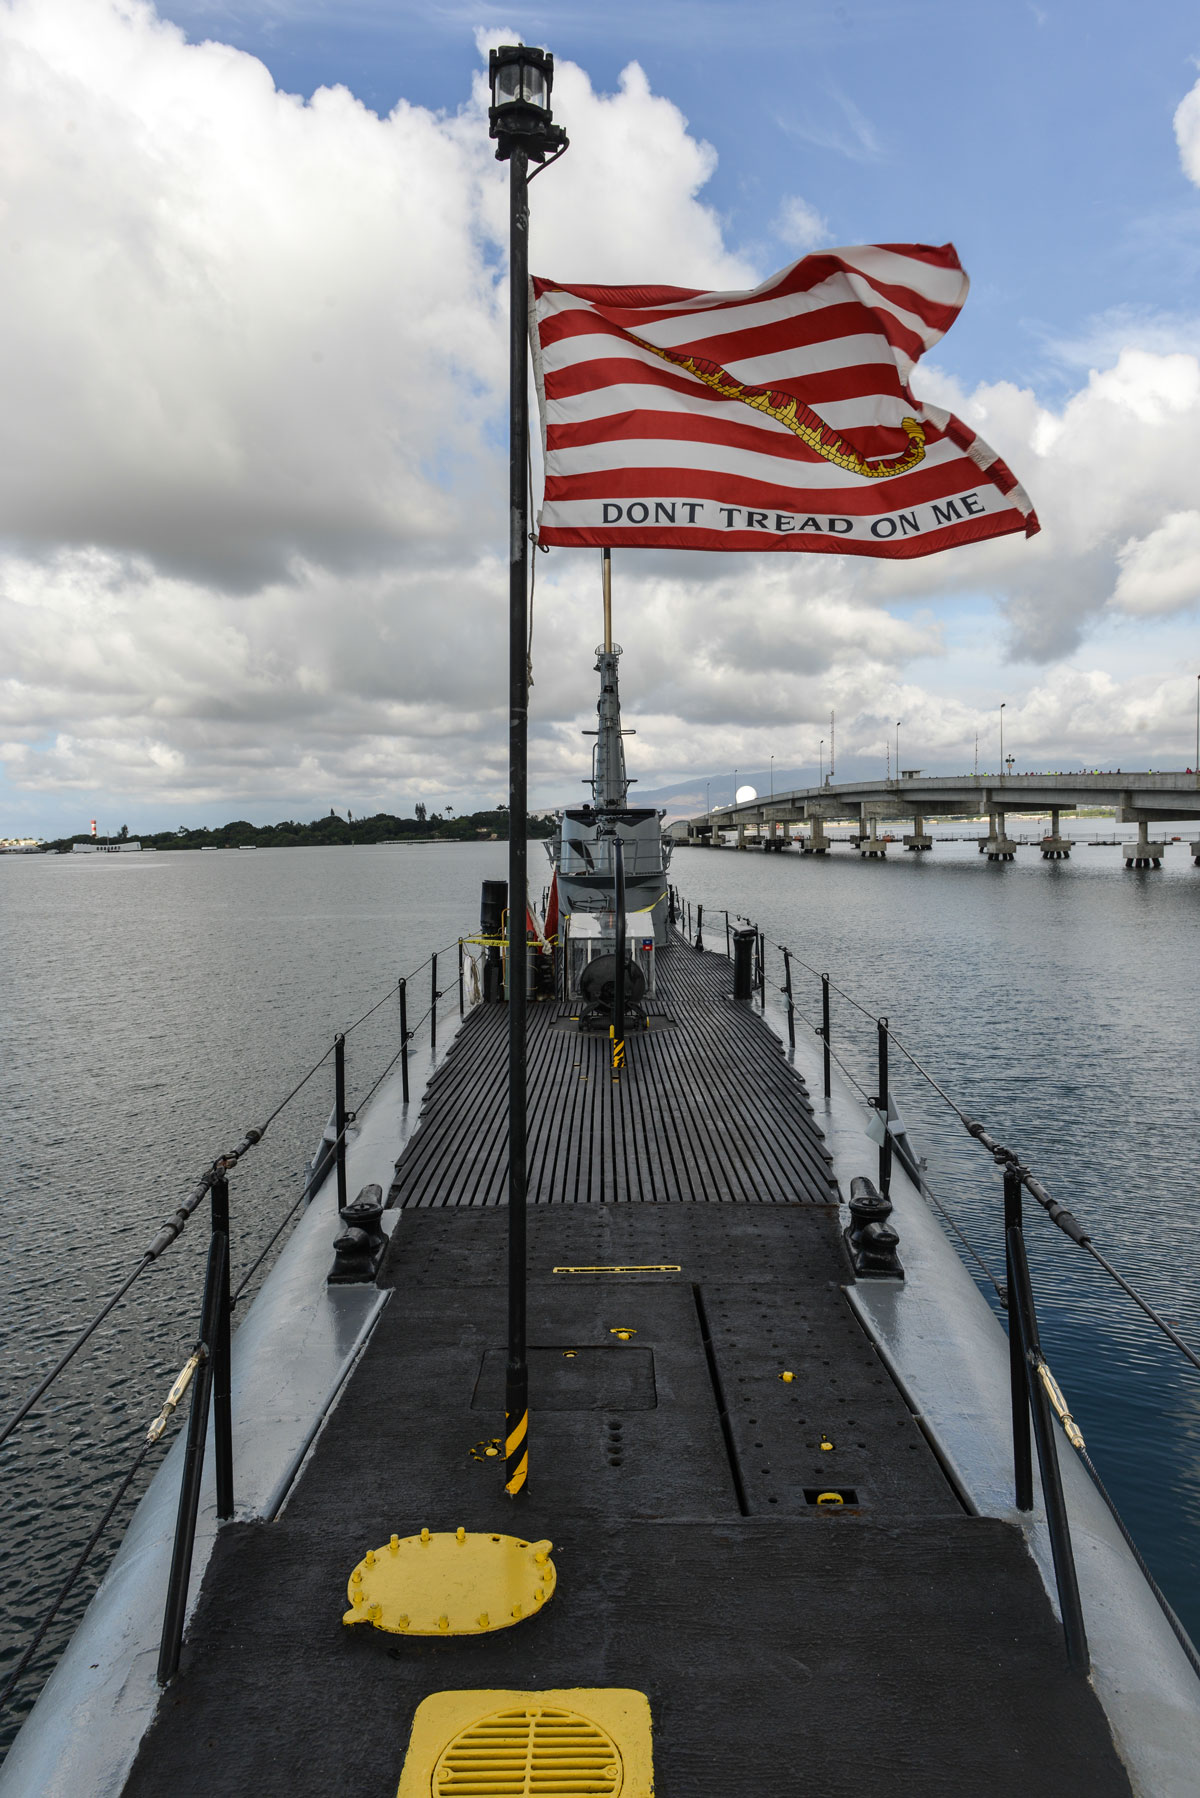 U.S. Navy Don't Tread On Me Flag: The Rattlesnake Jack flown at USS Bowfin at Pearl Harbor, Oahu, Hawaii